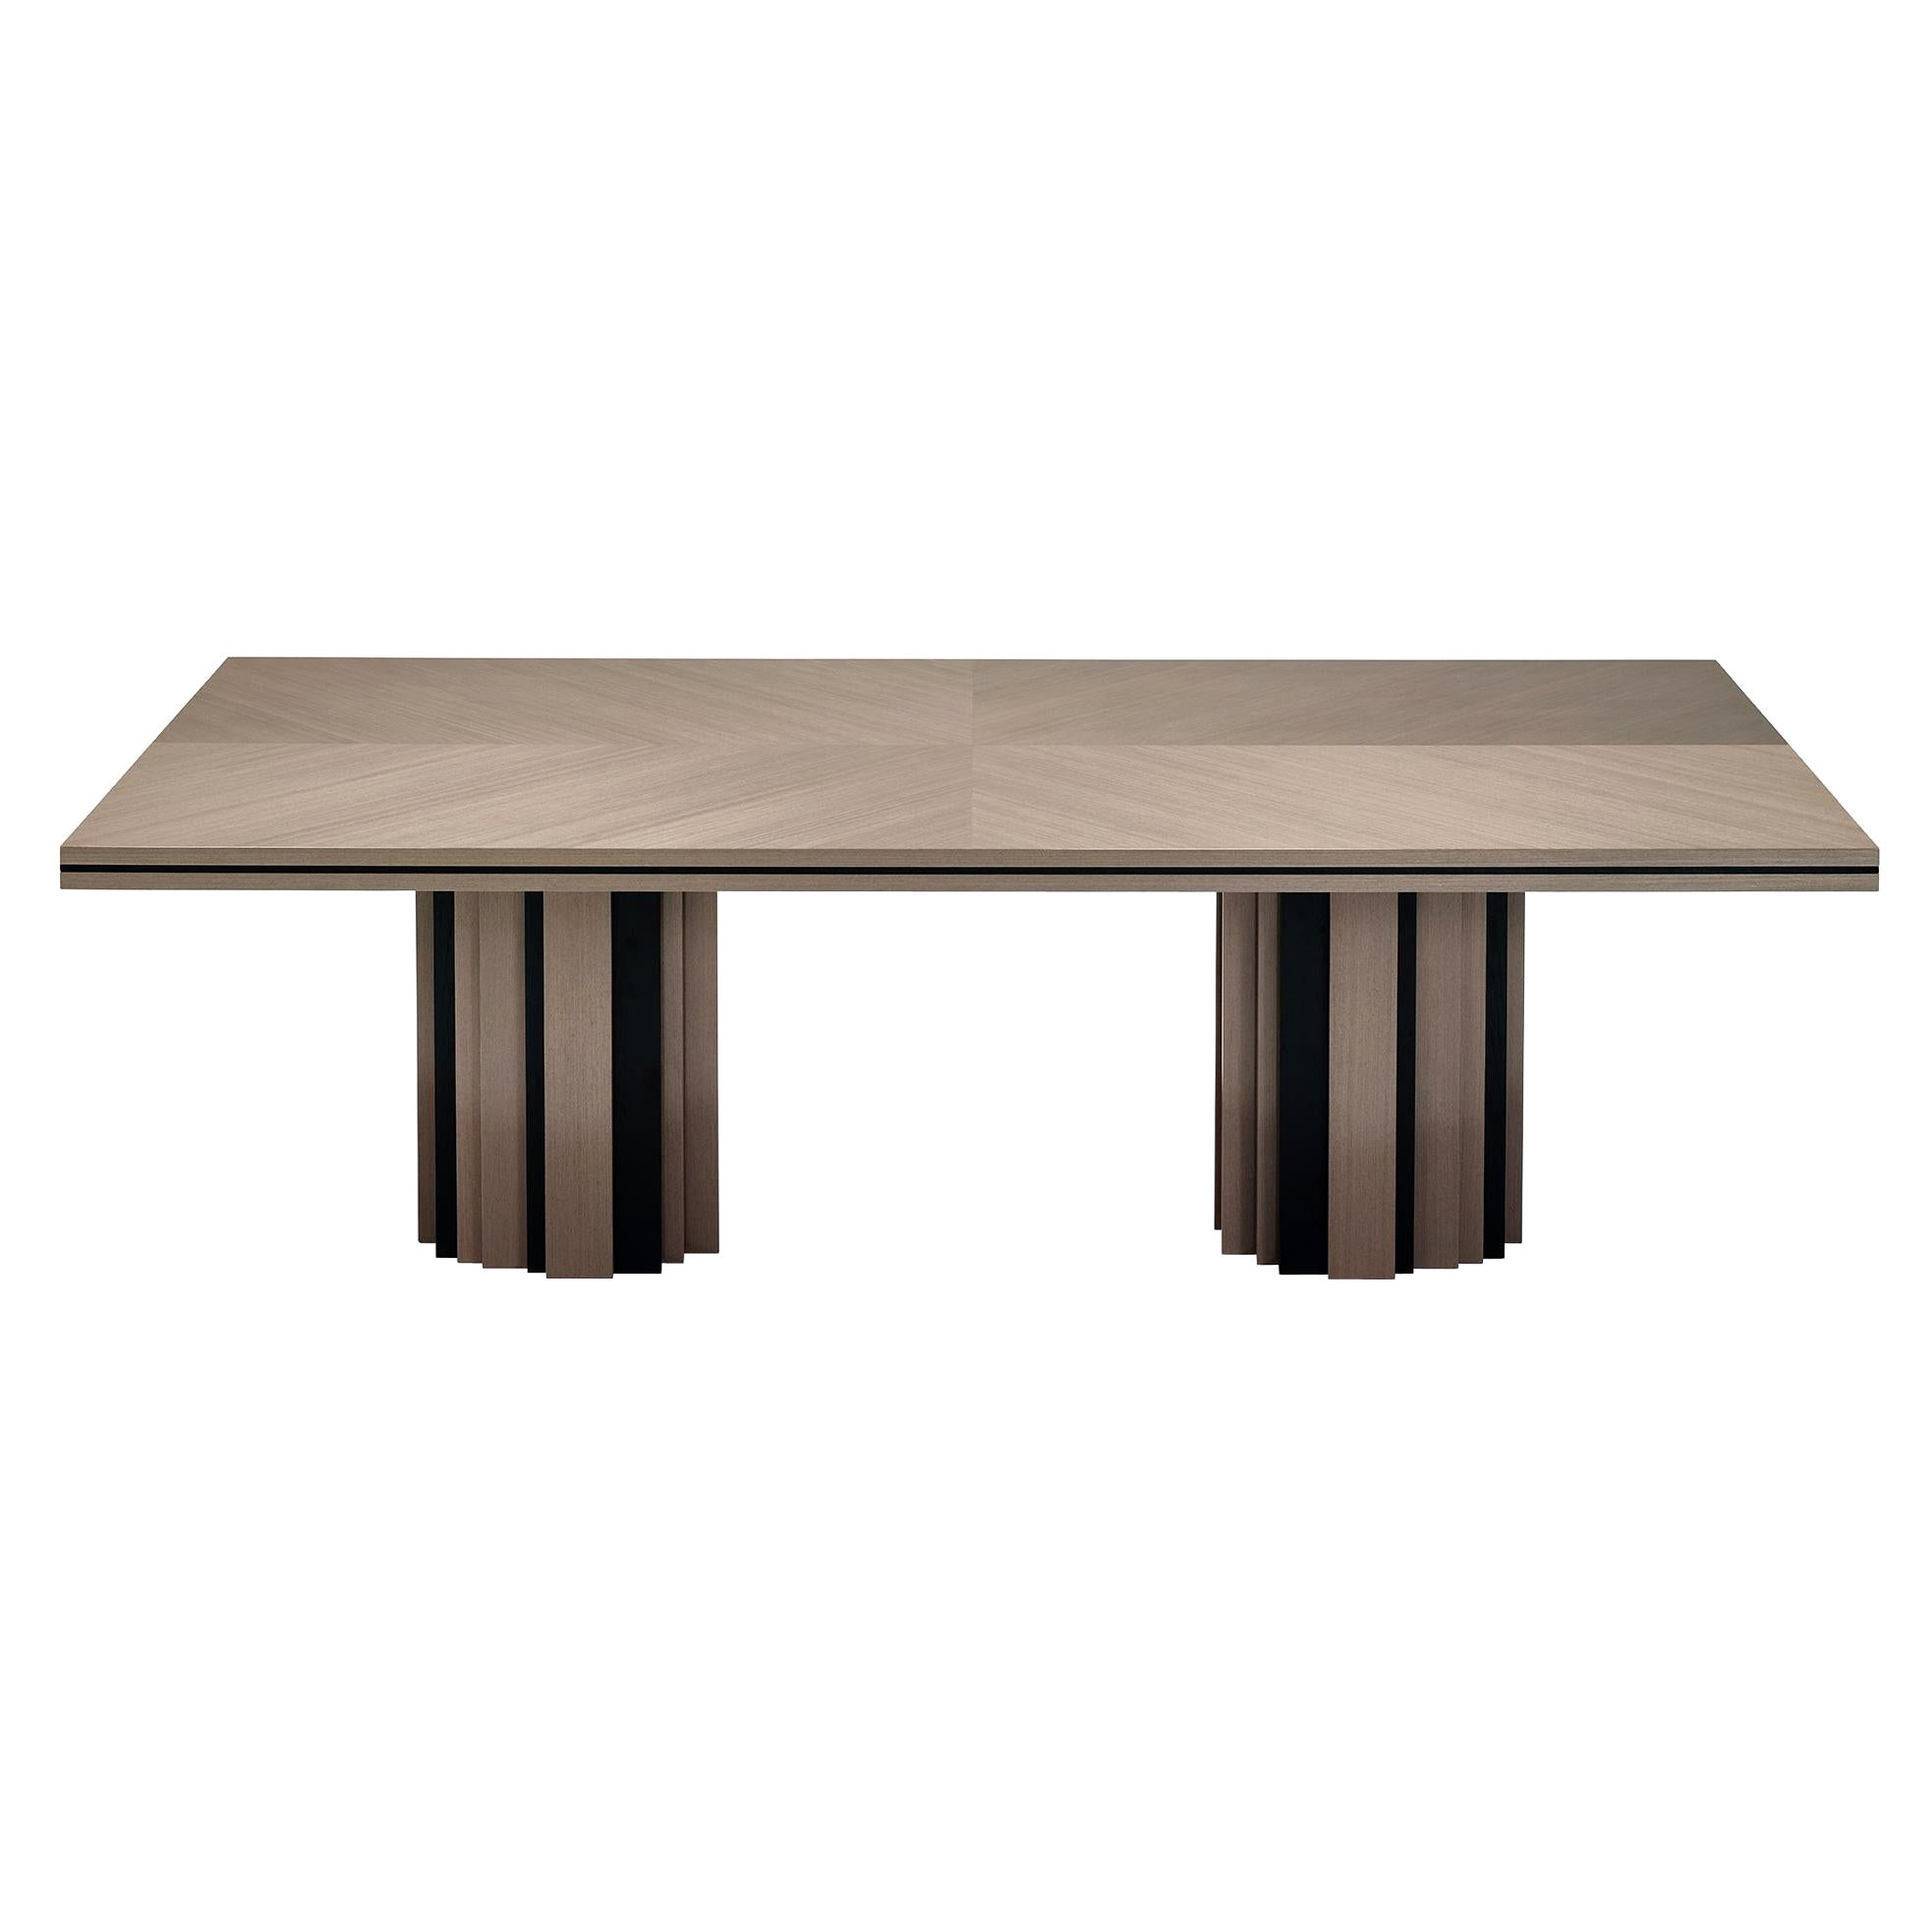 GINGER Wood Dining Table